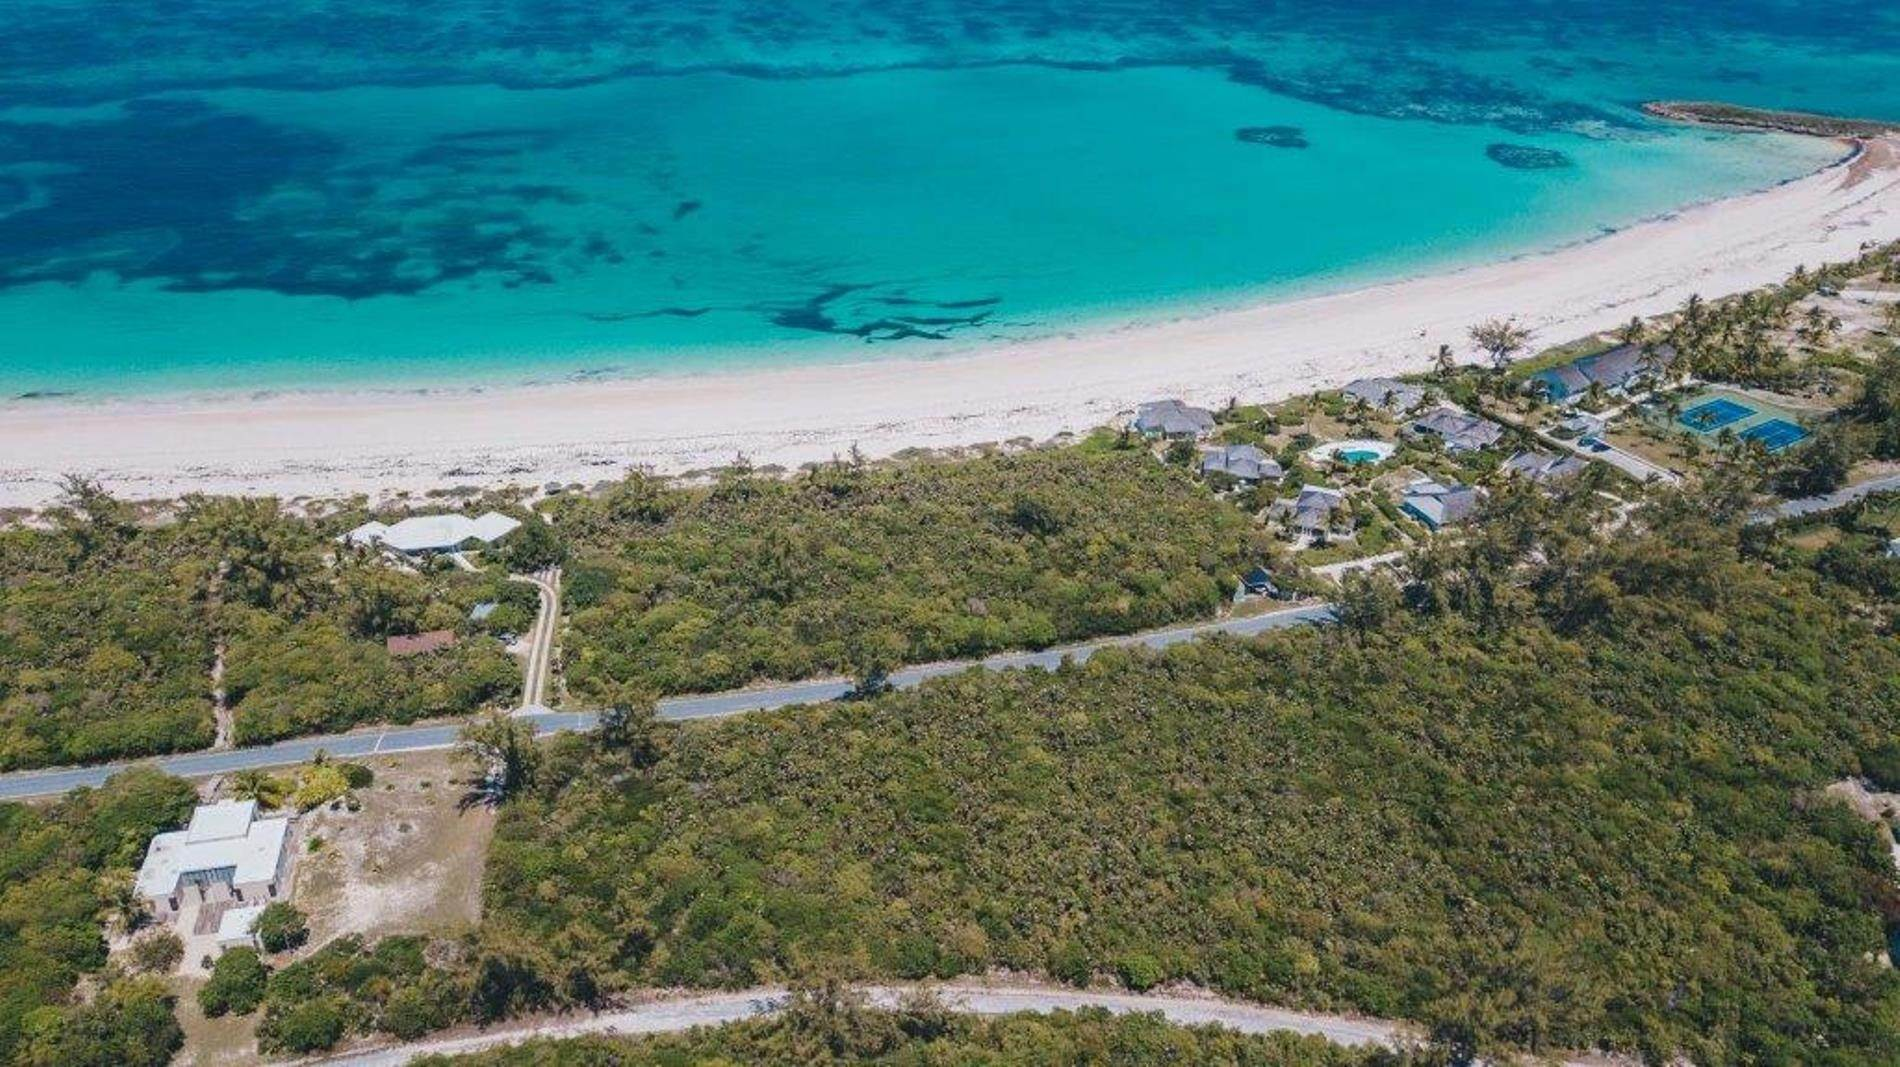 9. Terreno por un Venta en Unique Beach front Homesite at Windermere Beach Estates - Section A, Lot 9 and 126 - MLS 38497 Windermere Island, Eleuthera, Bahamas